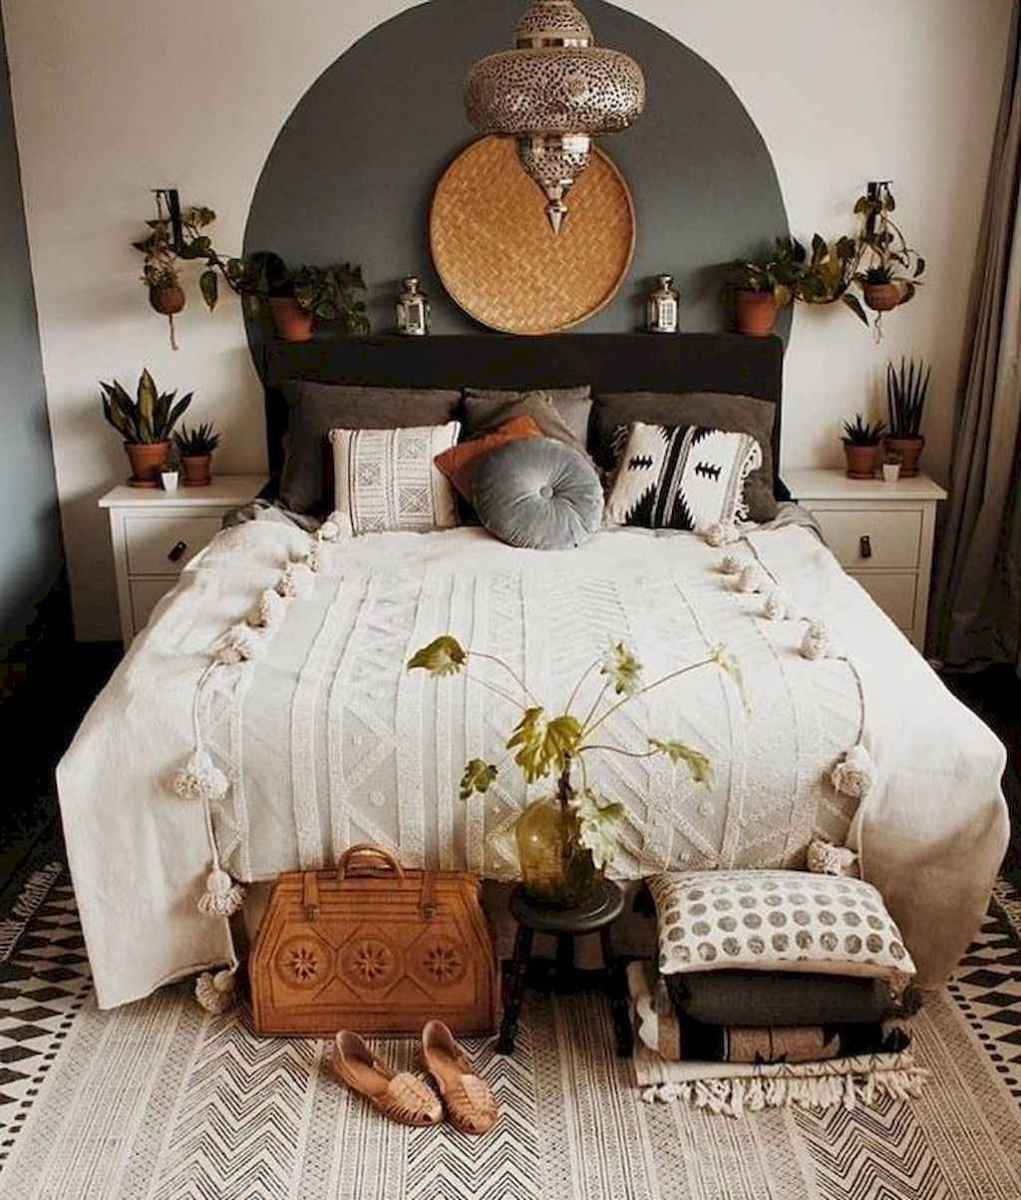 07 inspiration modern bohemian bedroom ideas